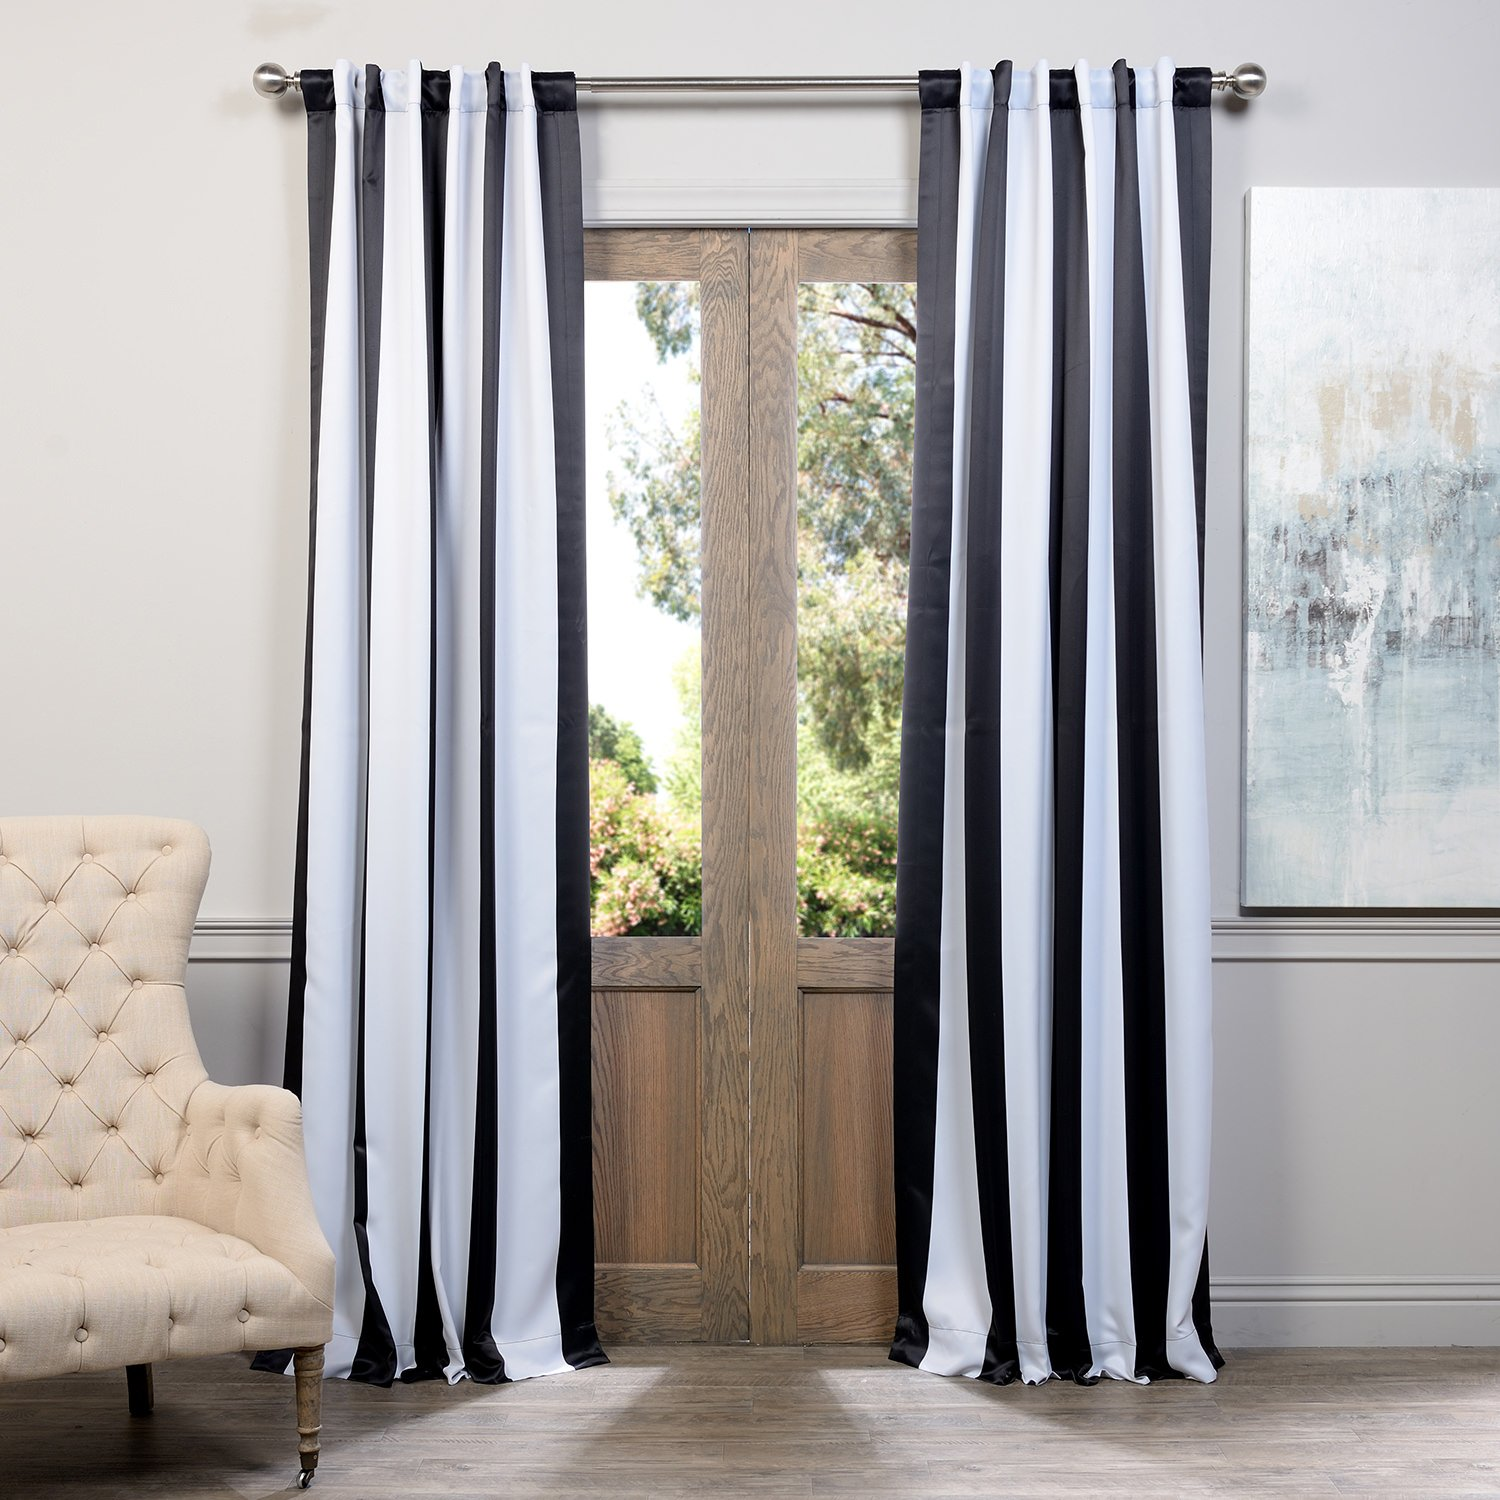 decorating drapery size curtains pinterest with target best enjoyable white in bedroom master design simple and sheer black shui ideas blinds barre for on bedroomains feng grey blackout drapes images